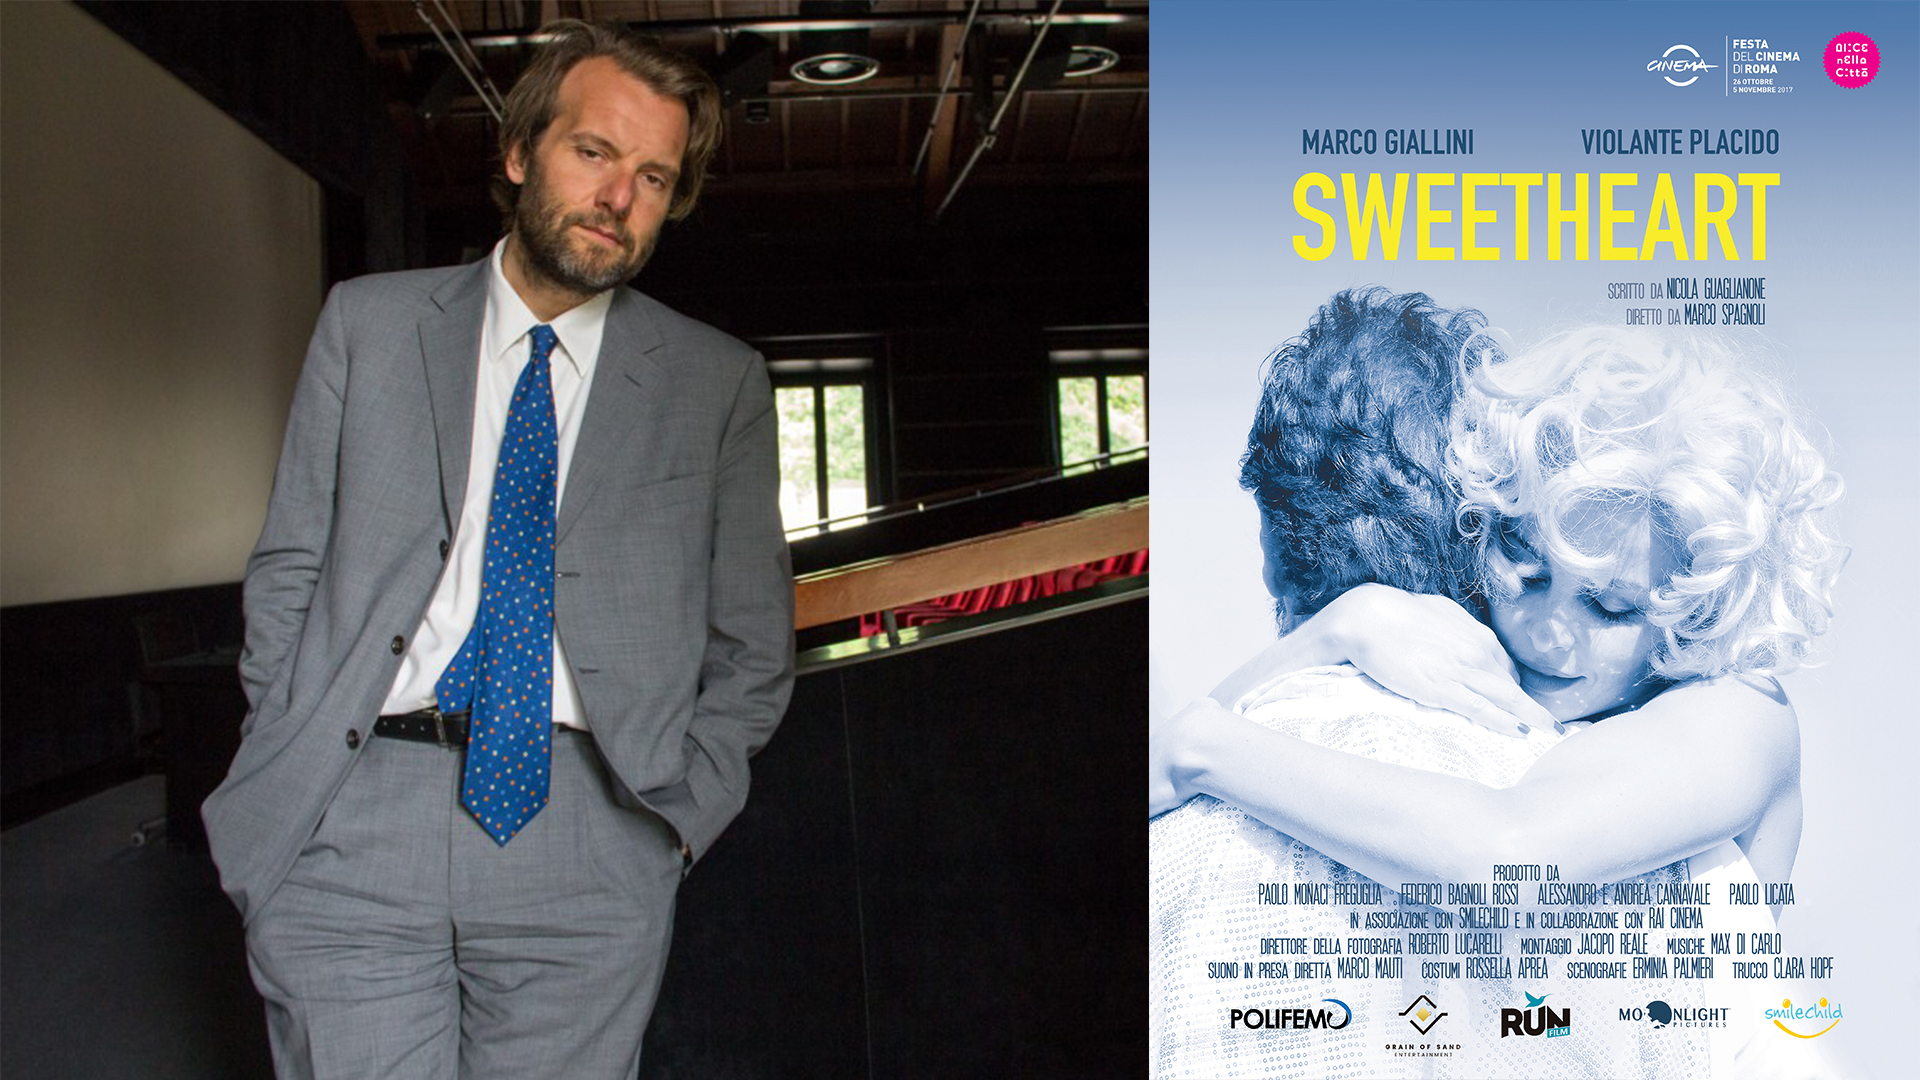 Interview with Marco Spagnoli, Director of Sweetheart